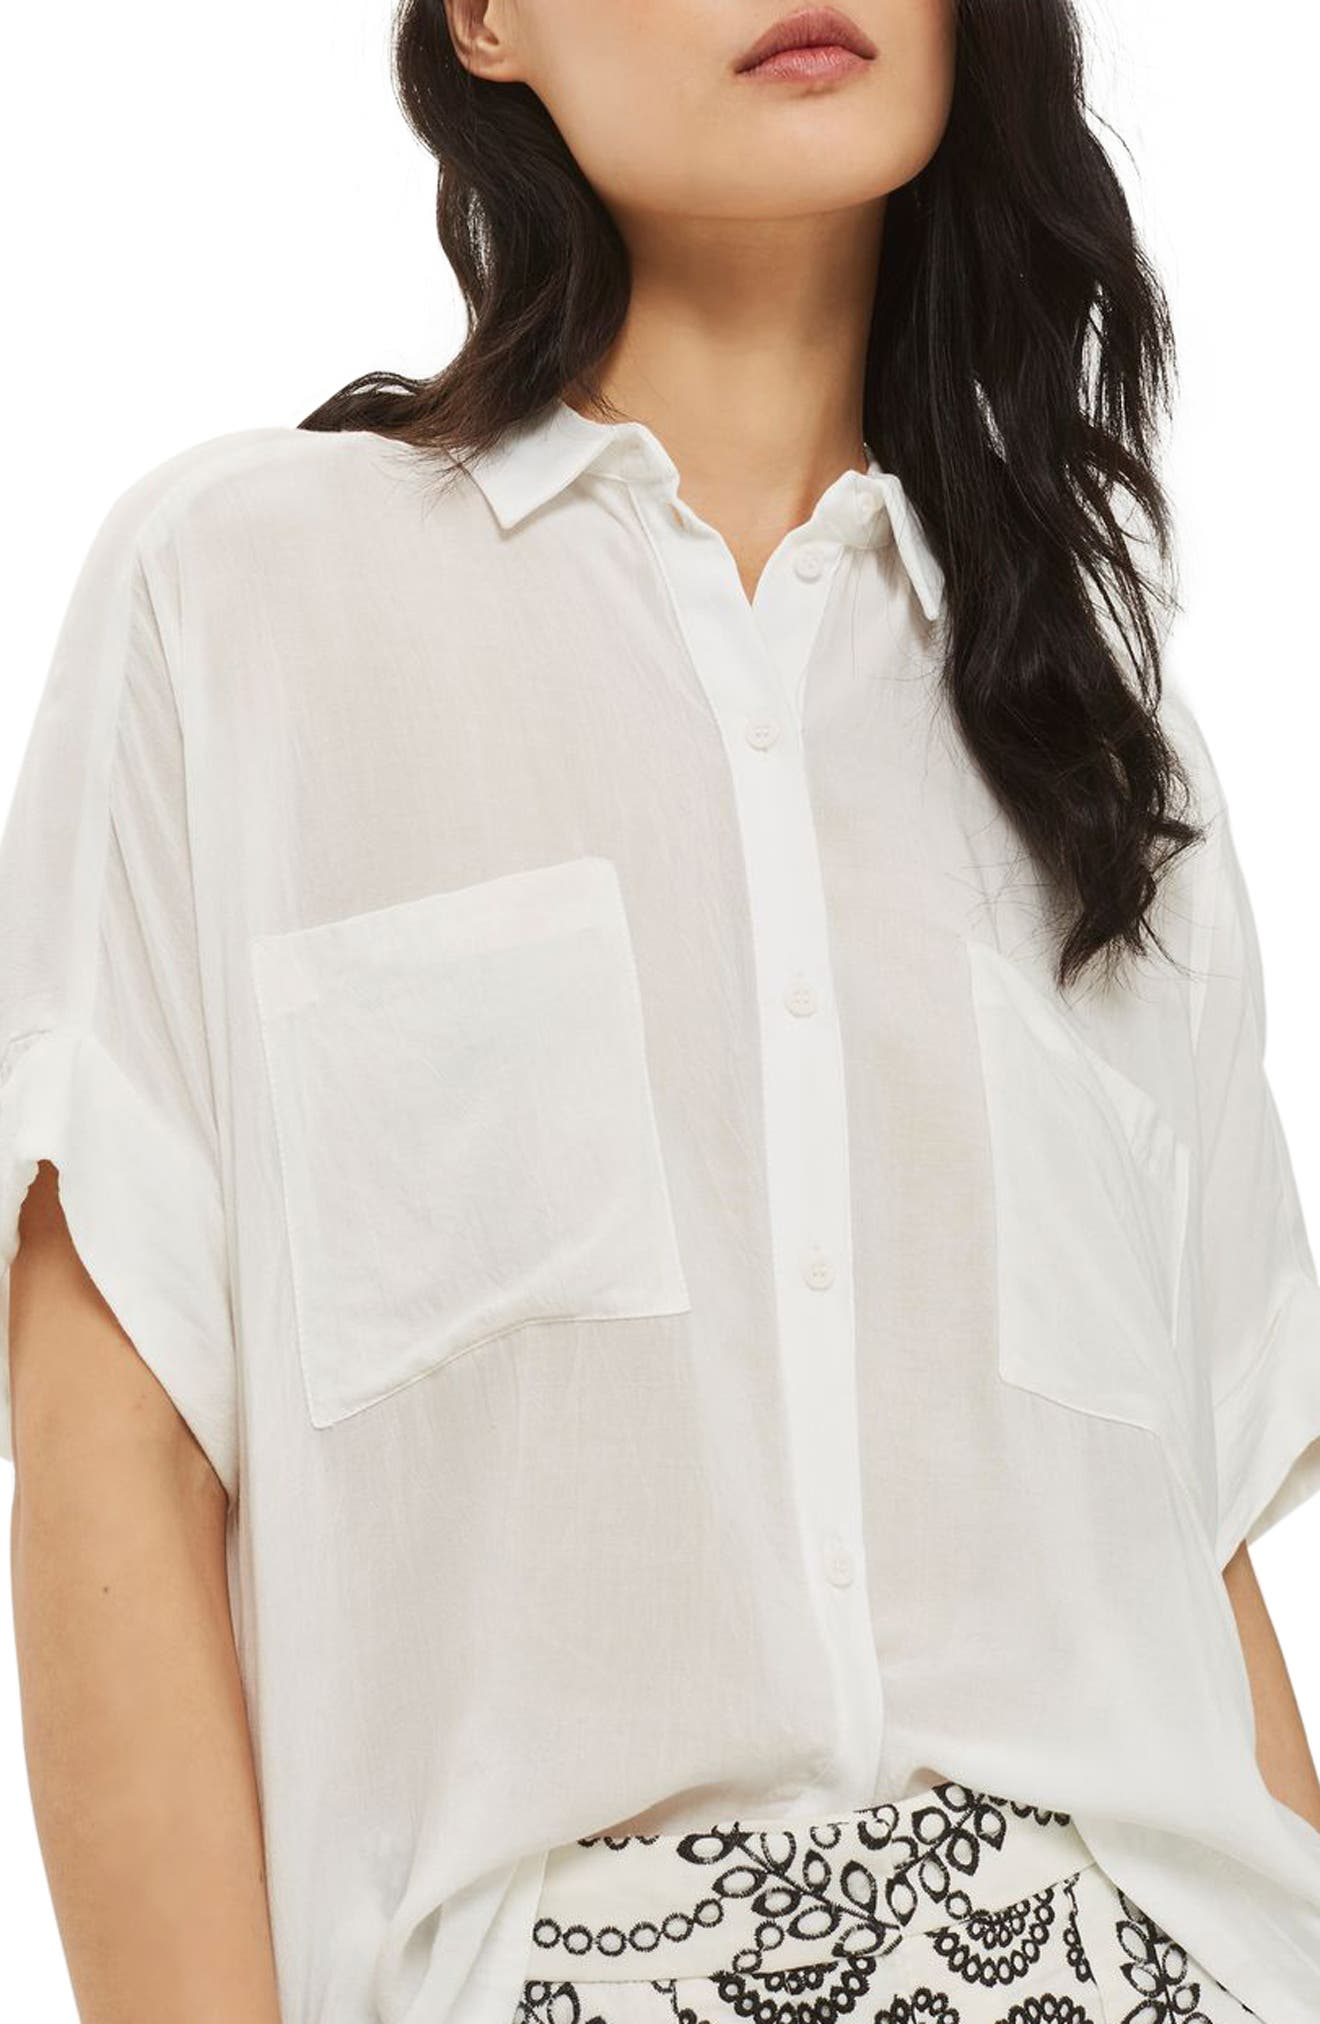 Topshop Joey Shirt